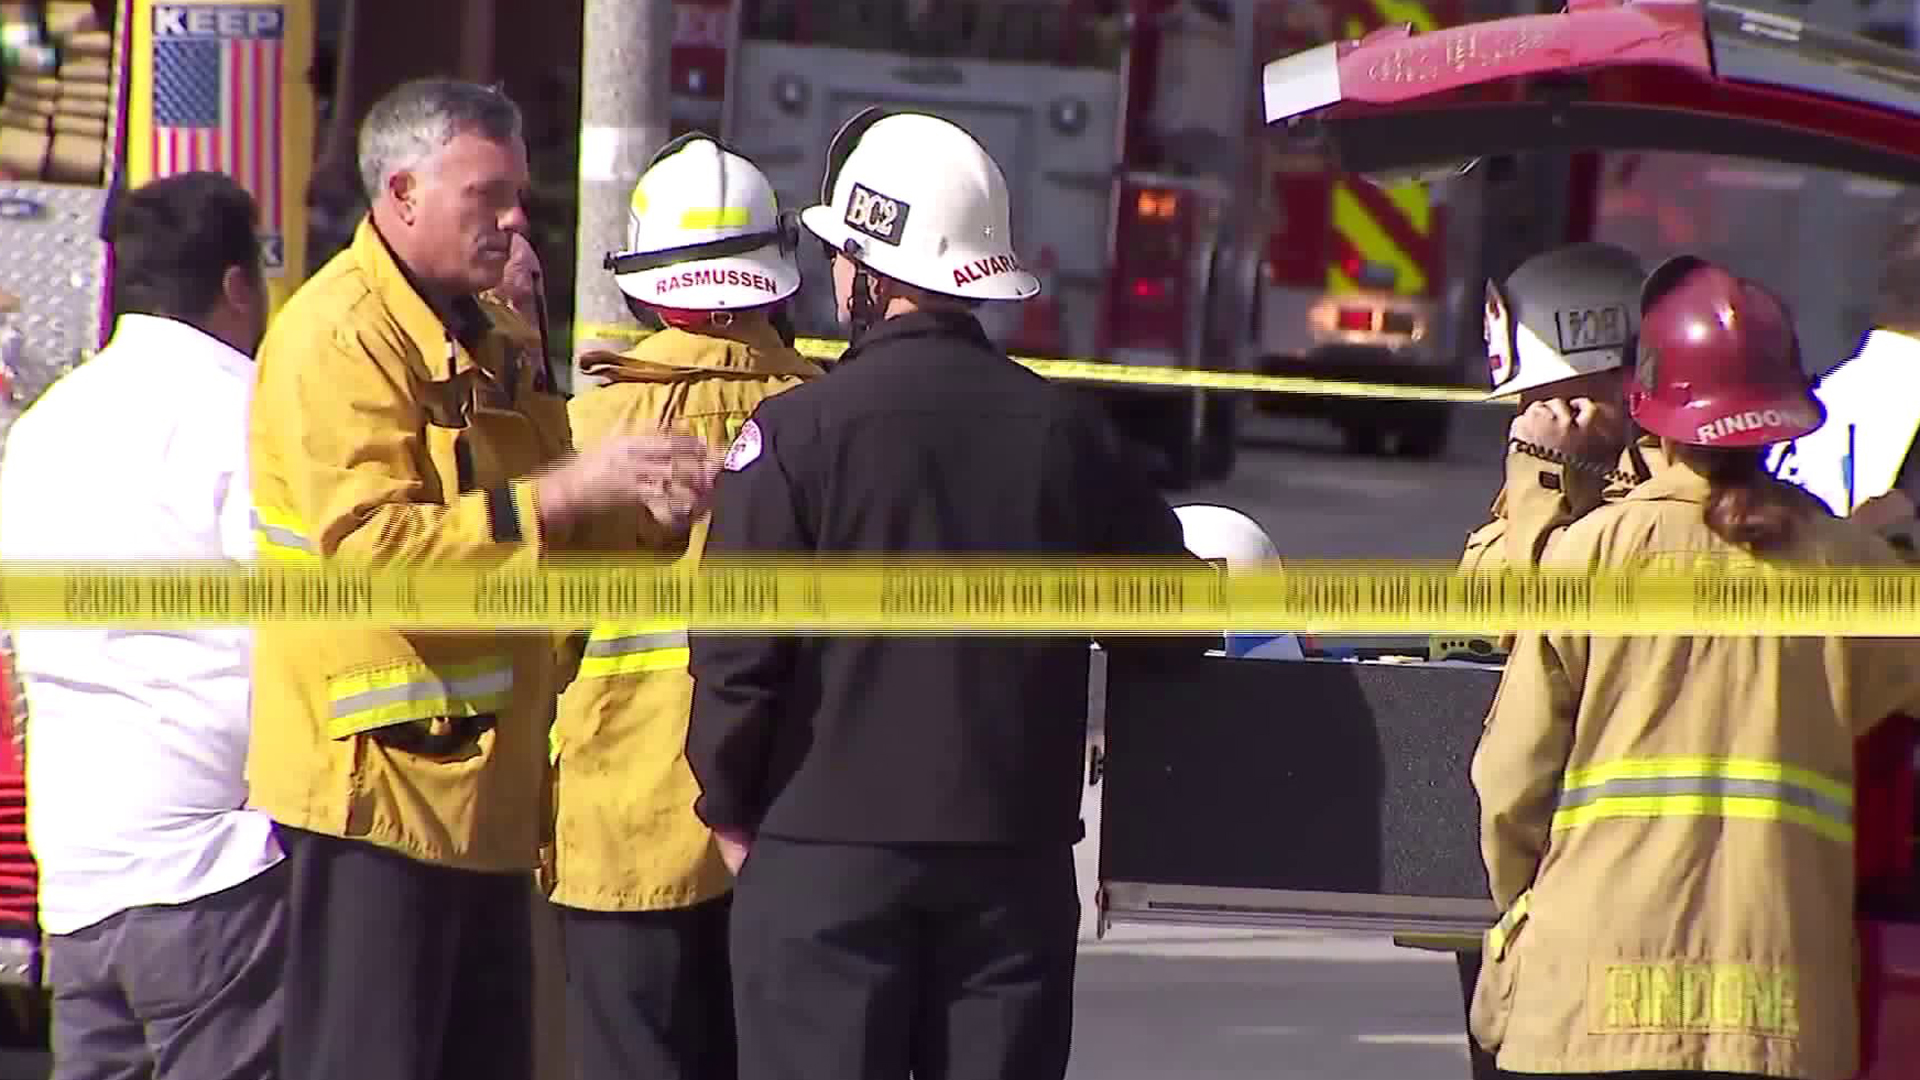 Firefighters and other first responders stand at the scene at Cal State Long Beach, where a chemistry experiment sparked a fire that injured one person on Feb. 27, 2018. (Credit: KTLA)